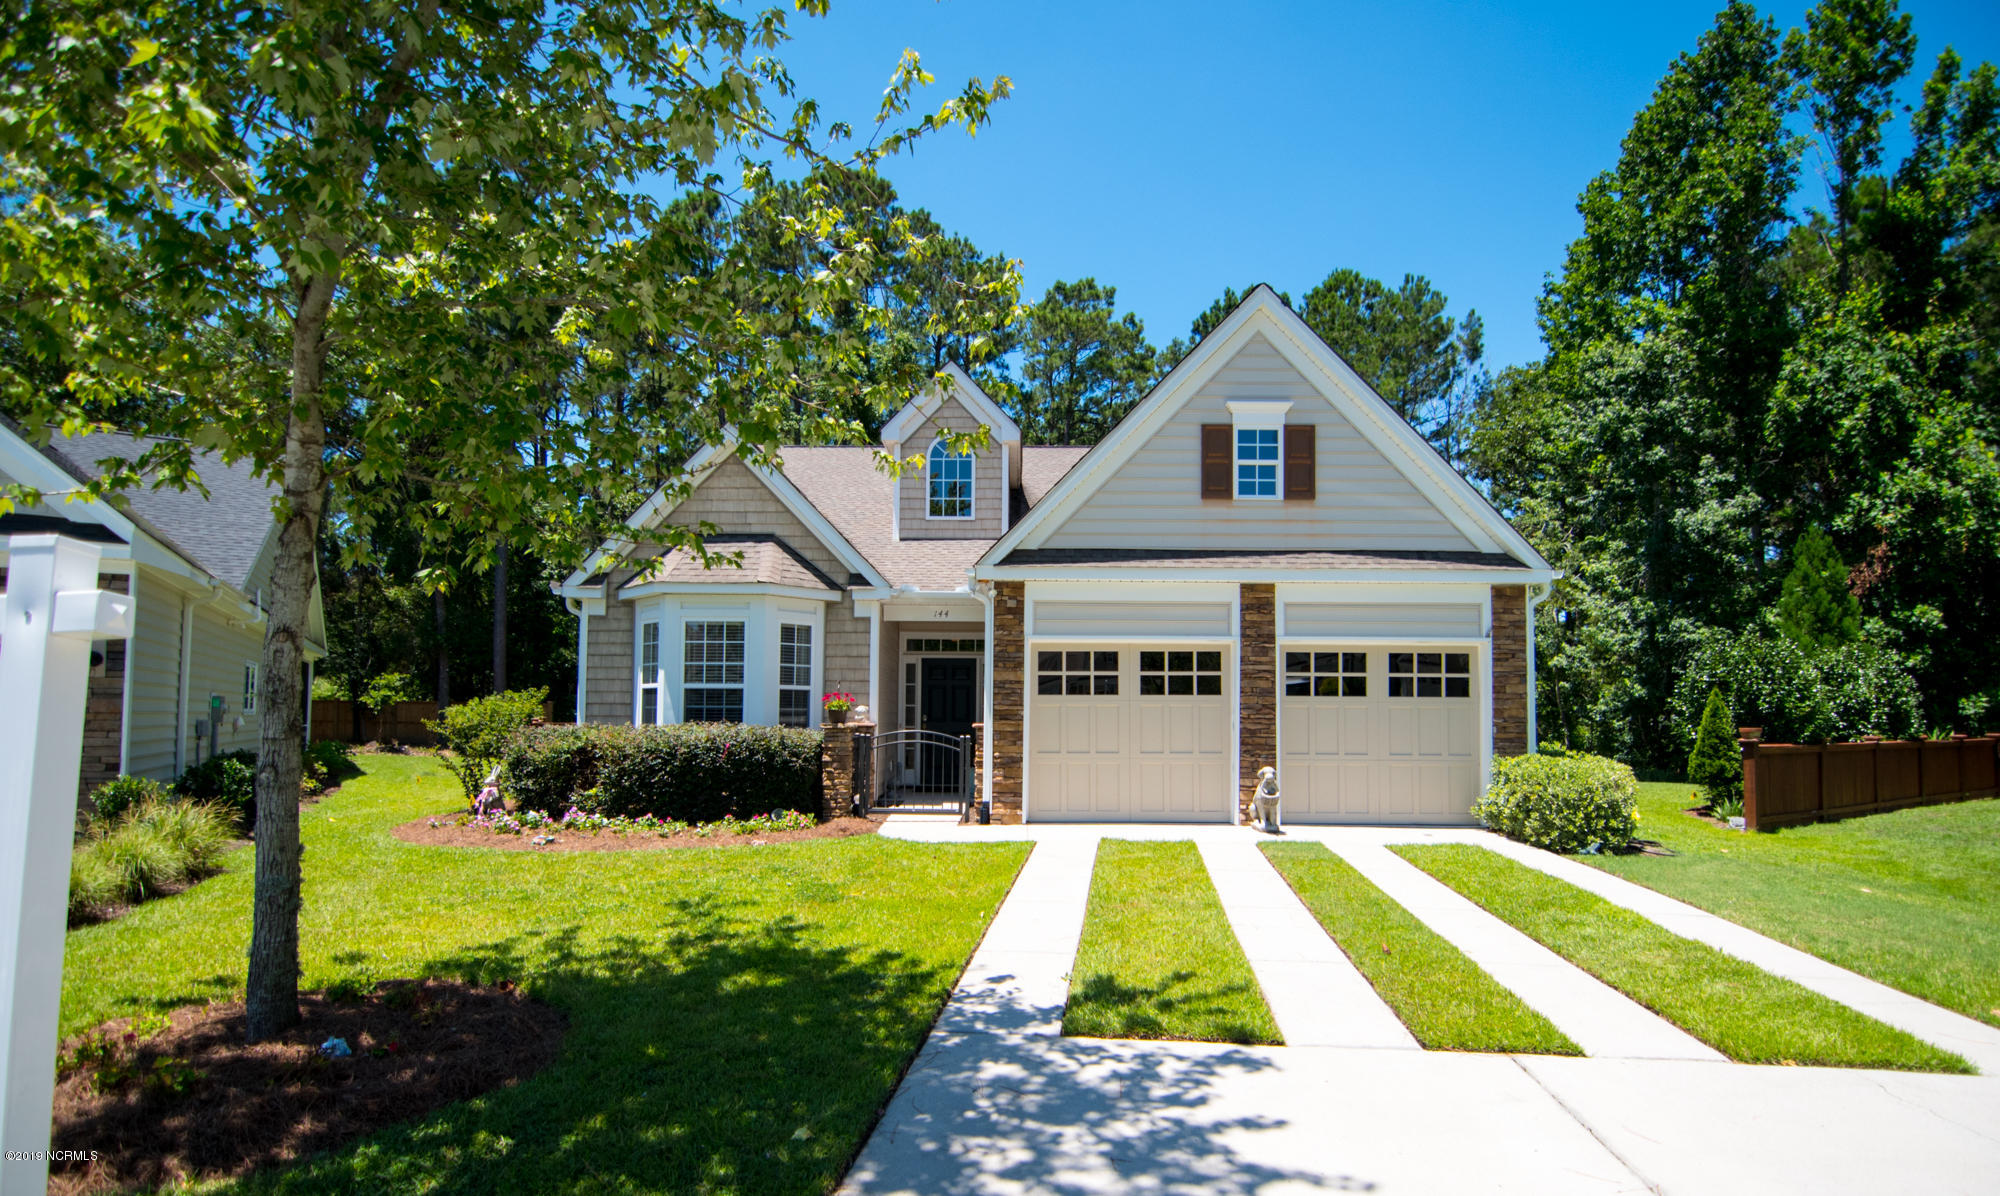 144 Talbot Court Sunset Beach, NC 28468